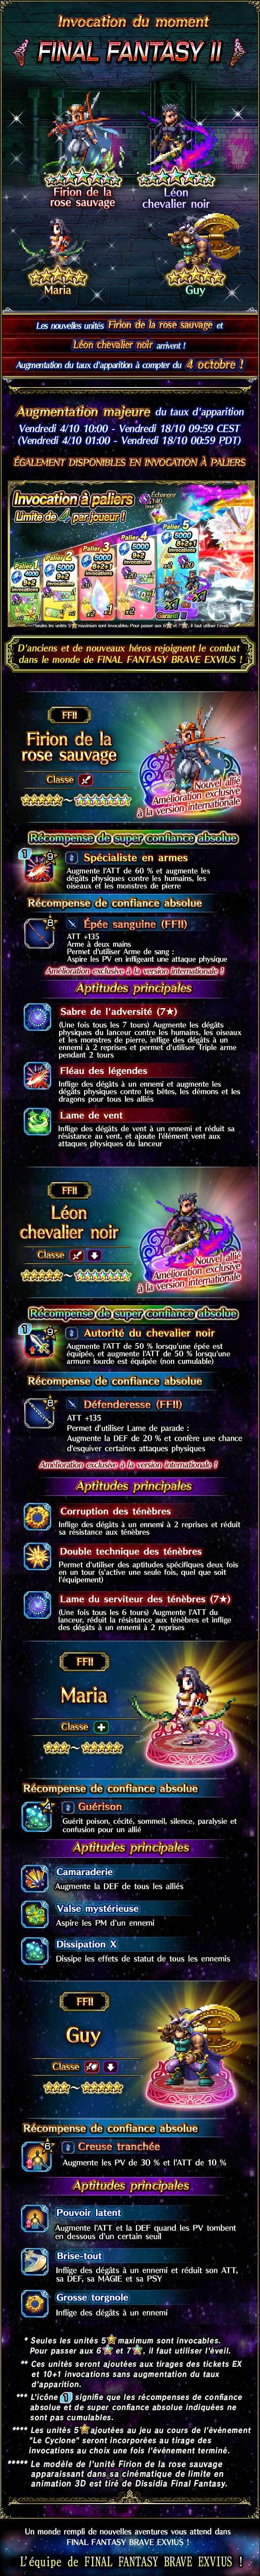 Invocations du moment - FFII - du 04/10 au 18/10/19 20191001FFIICGFirionFeaturedSummon